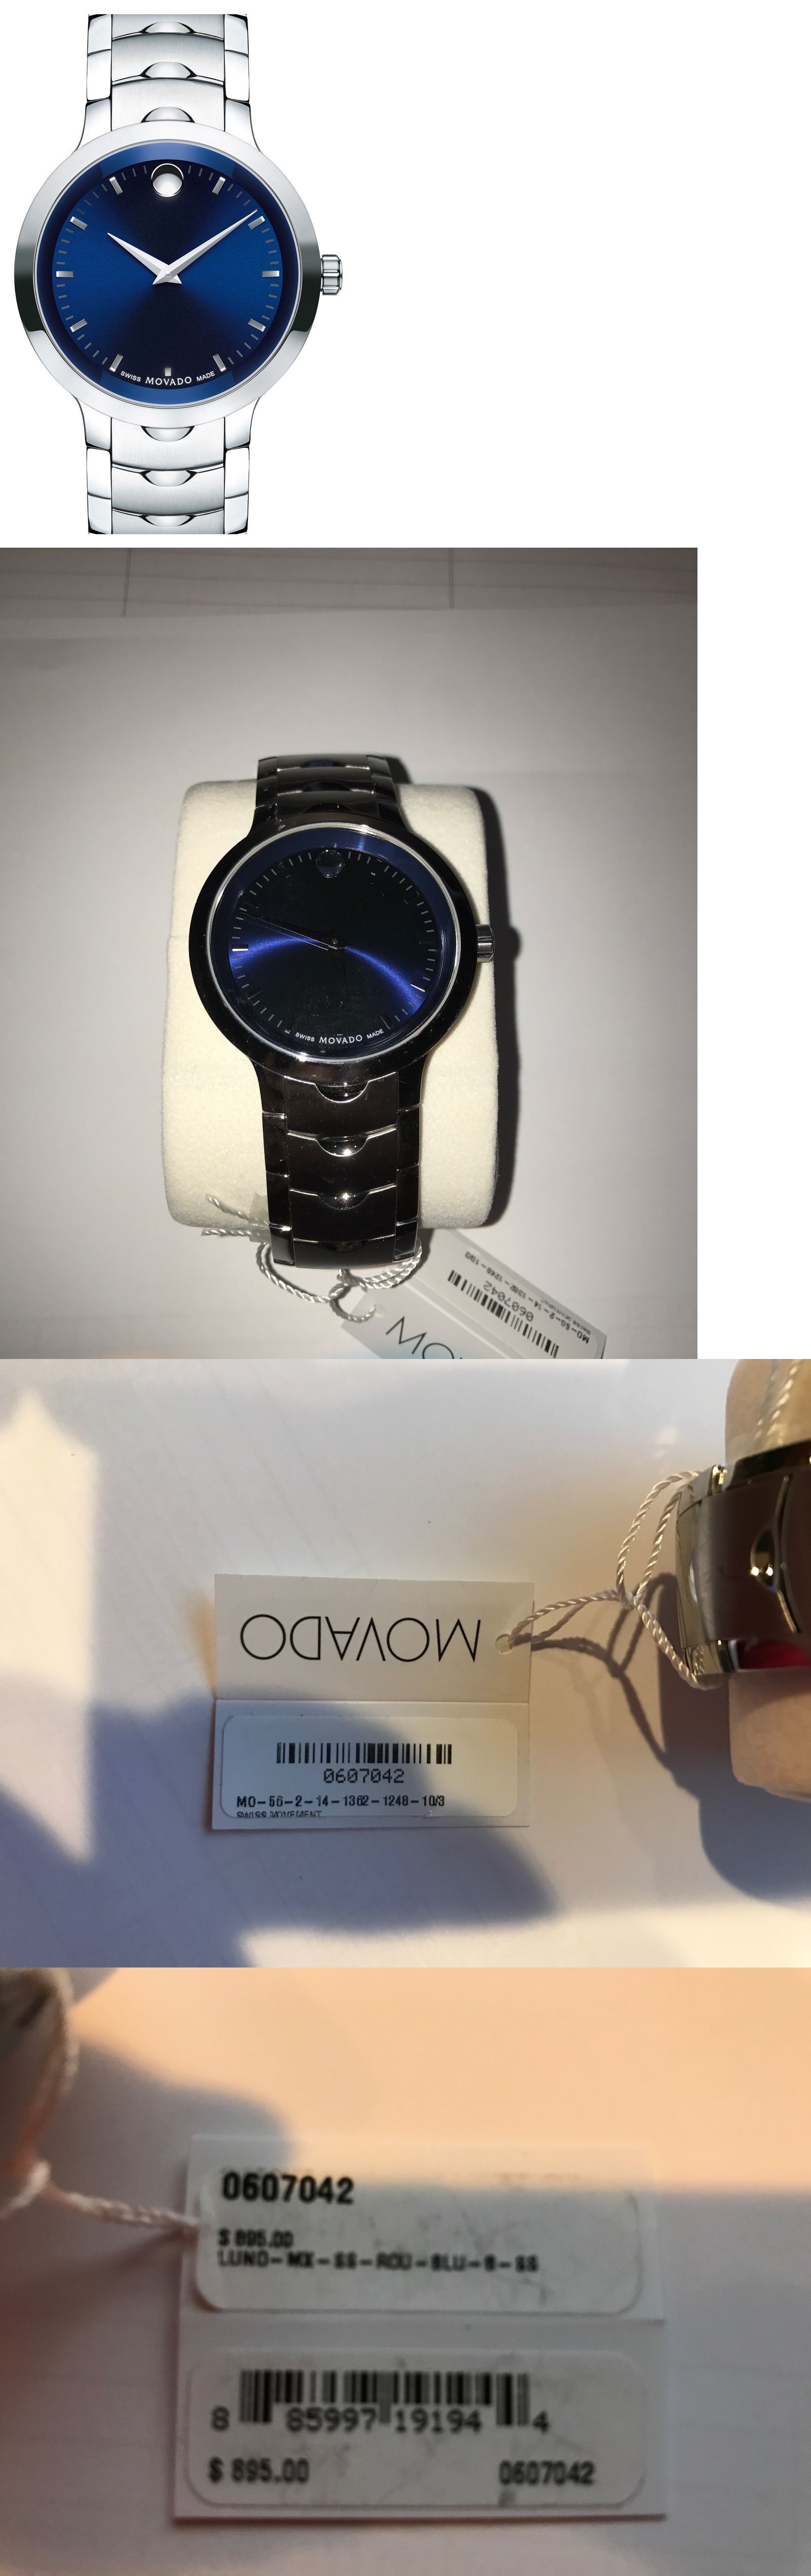 co item luno movado sport watches brothers solomon watch